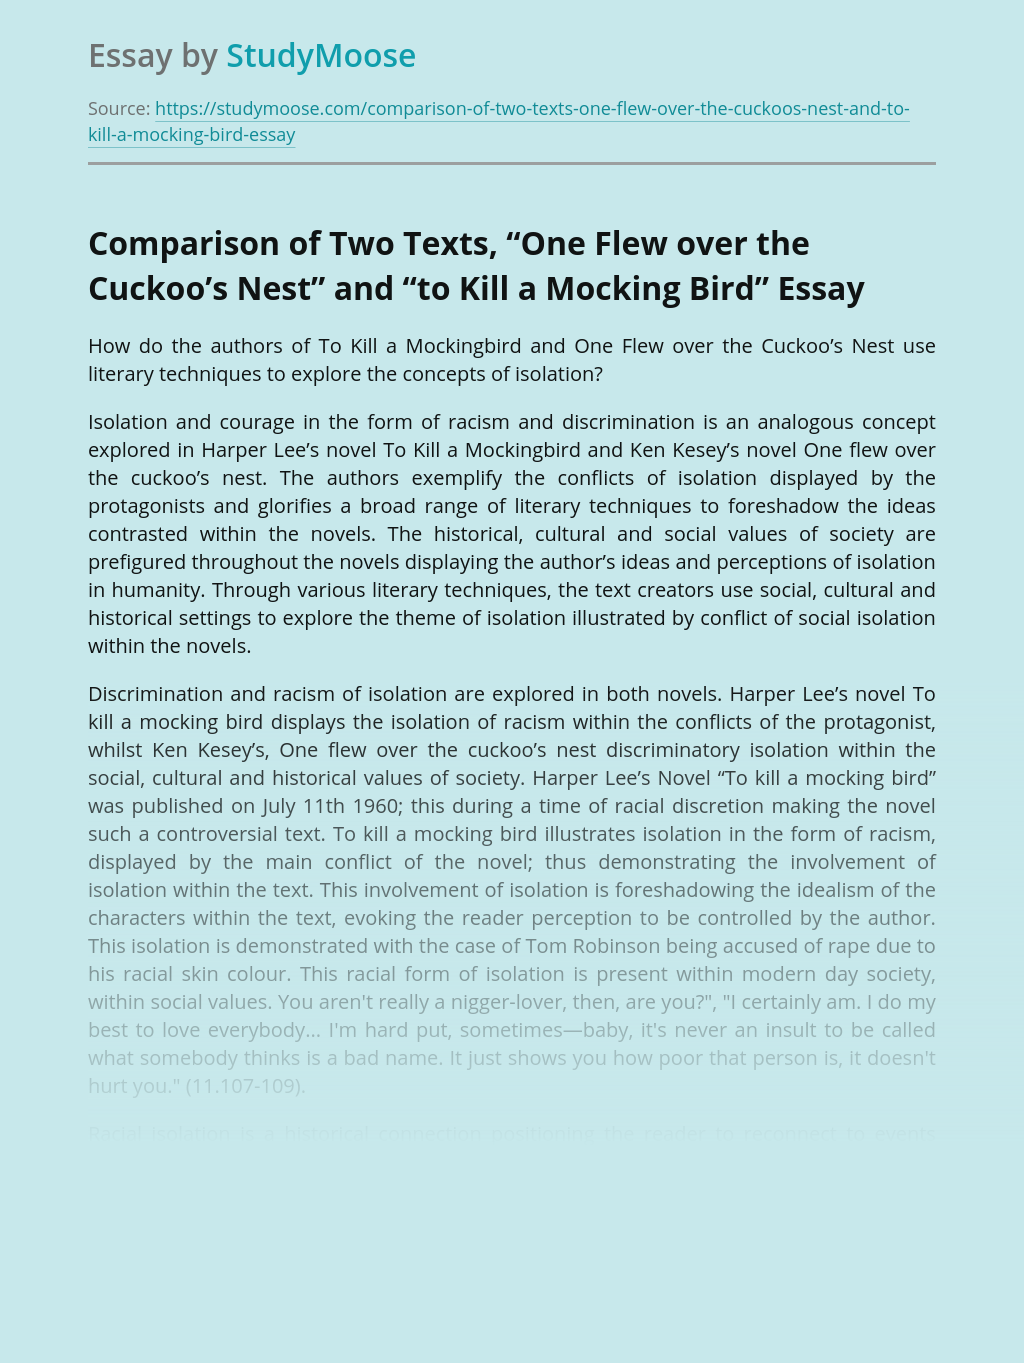 """Comparison of Two Texts, """"One Flew over the Cuckoo's Nest"""" and """"to Kill a Mocking Bird"""""""